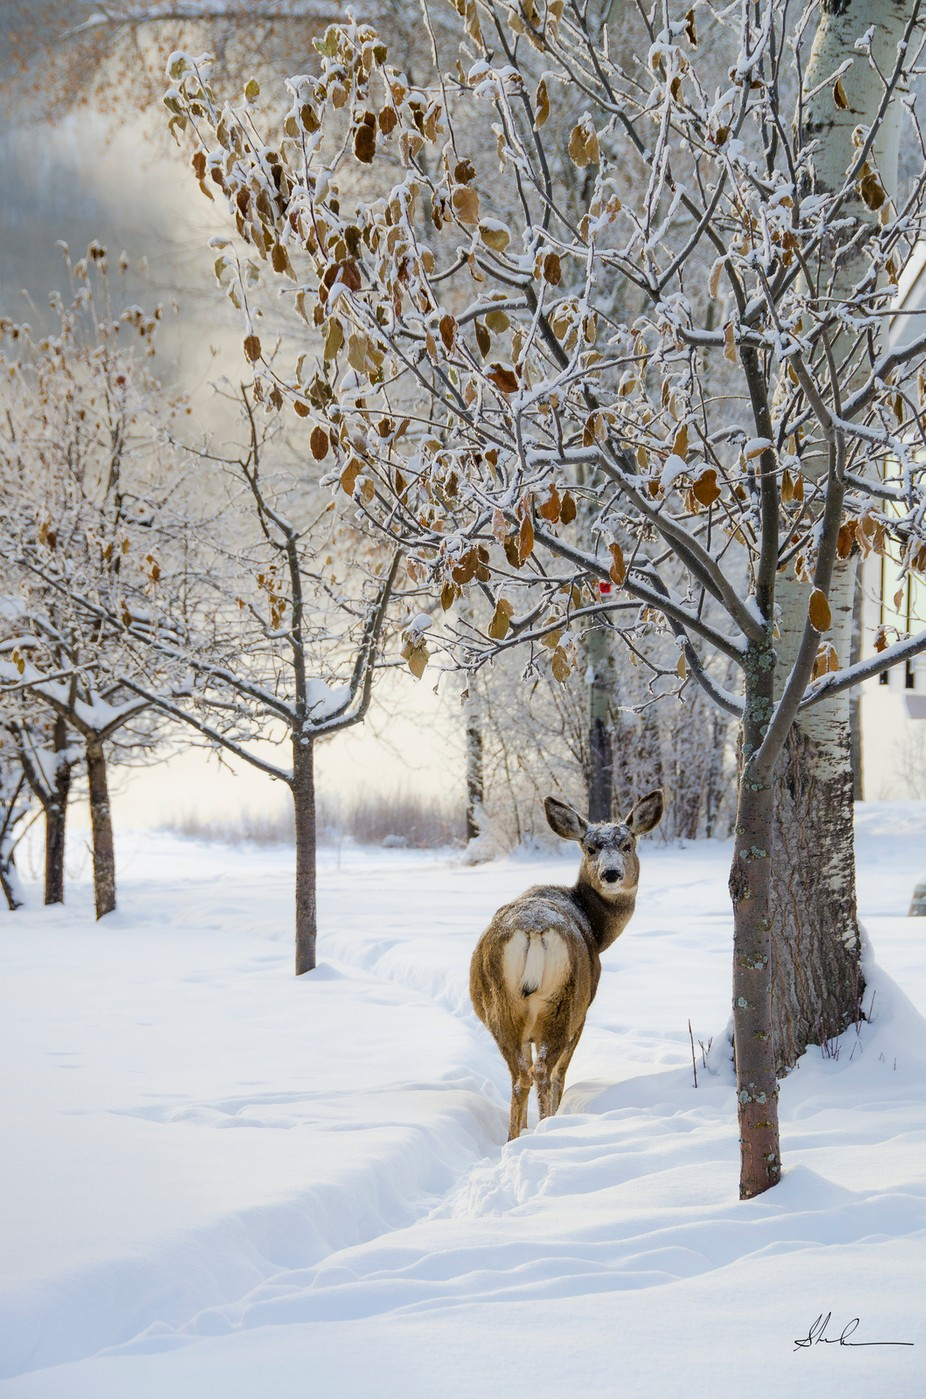 Looking Back by Peaceofthenorth - Winter Wildlife Photo Contest